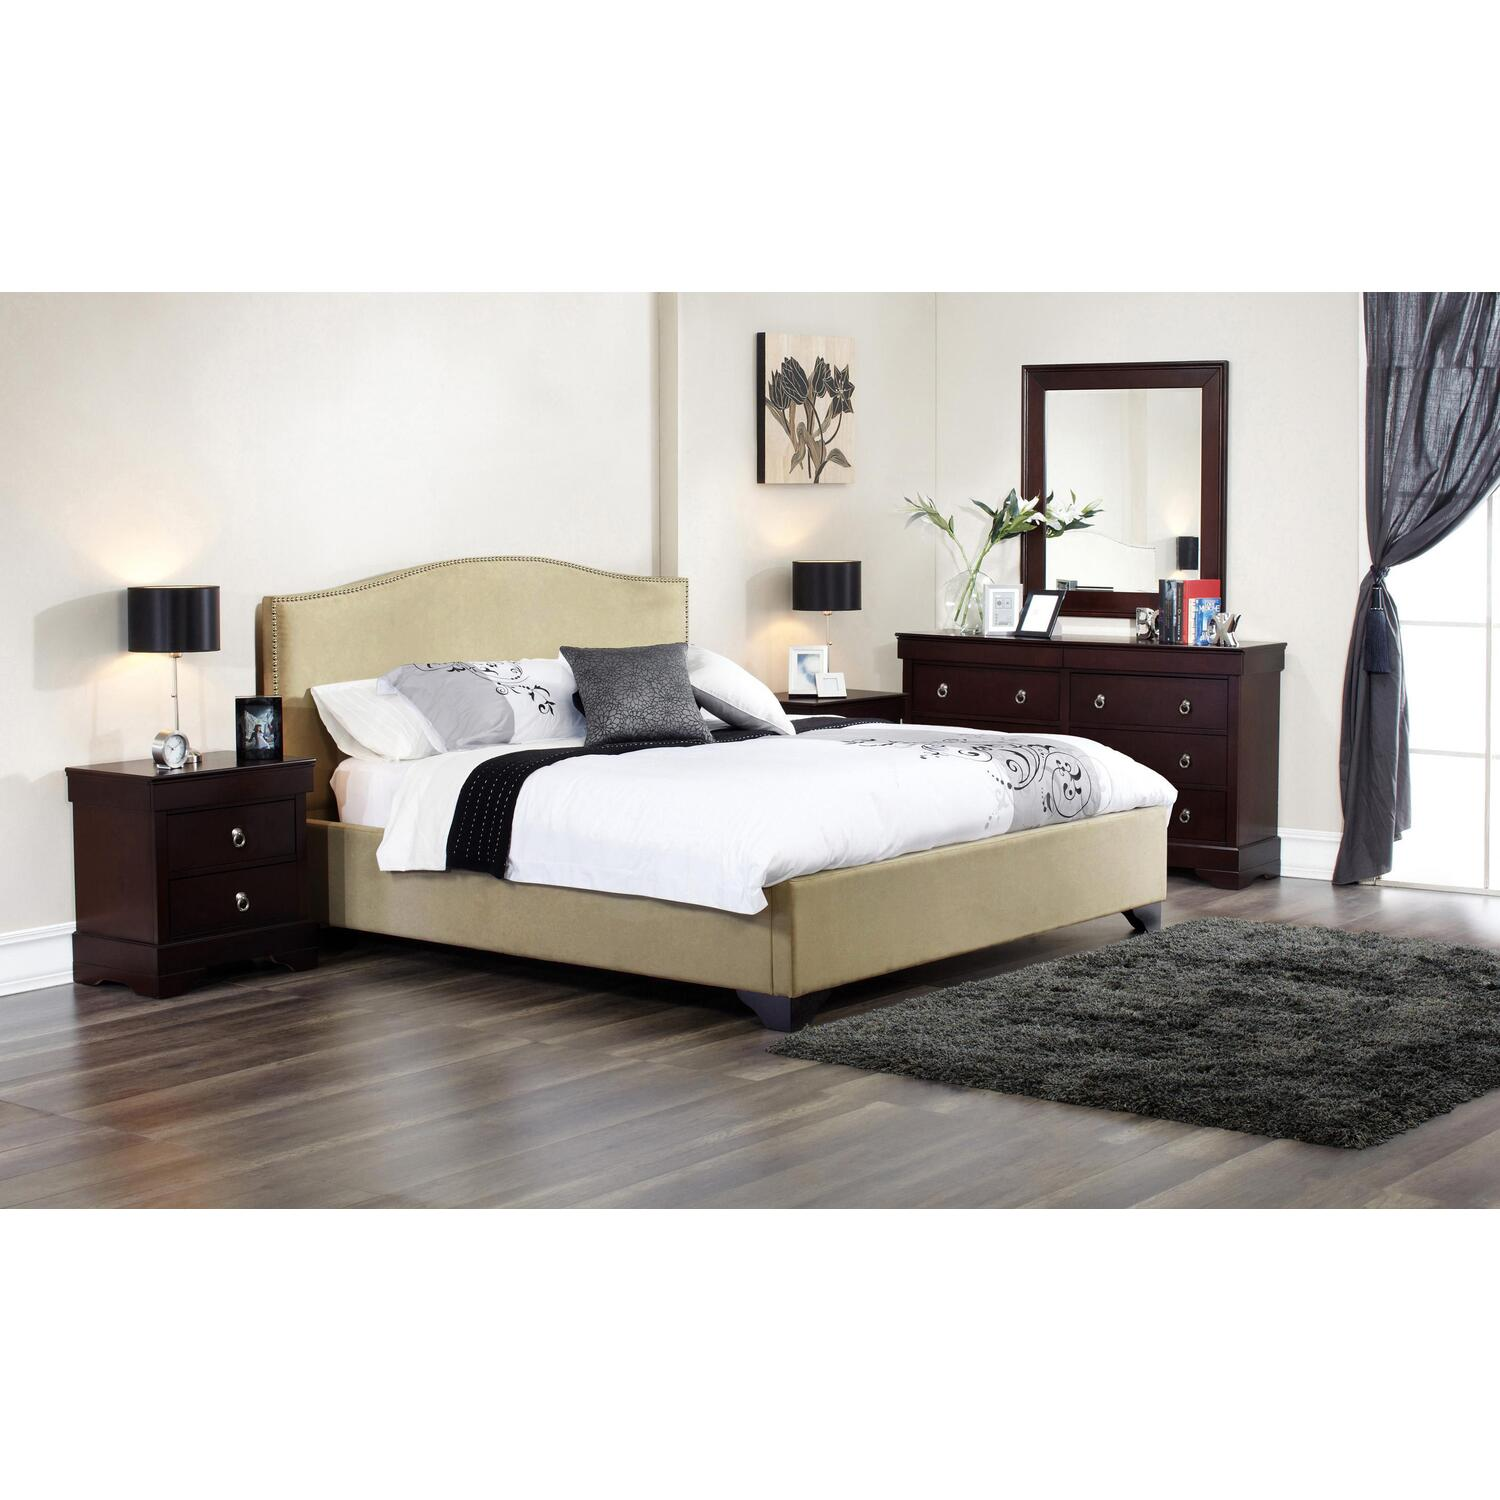 Magnolia Bedroom Set From 1299 99 To 1649 99 Ojcommerce